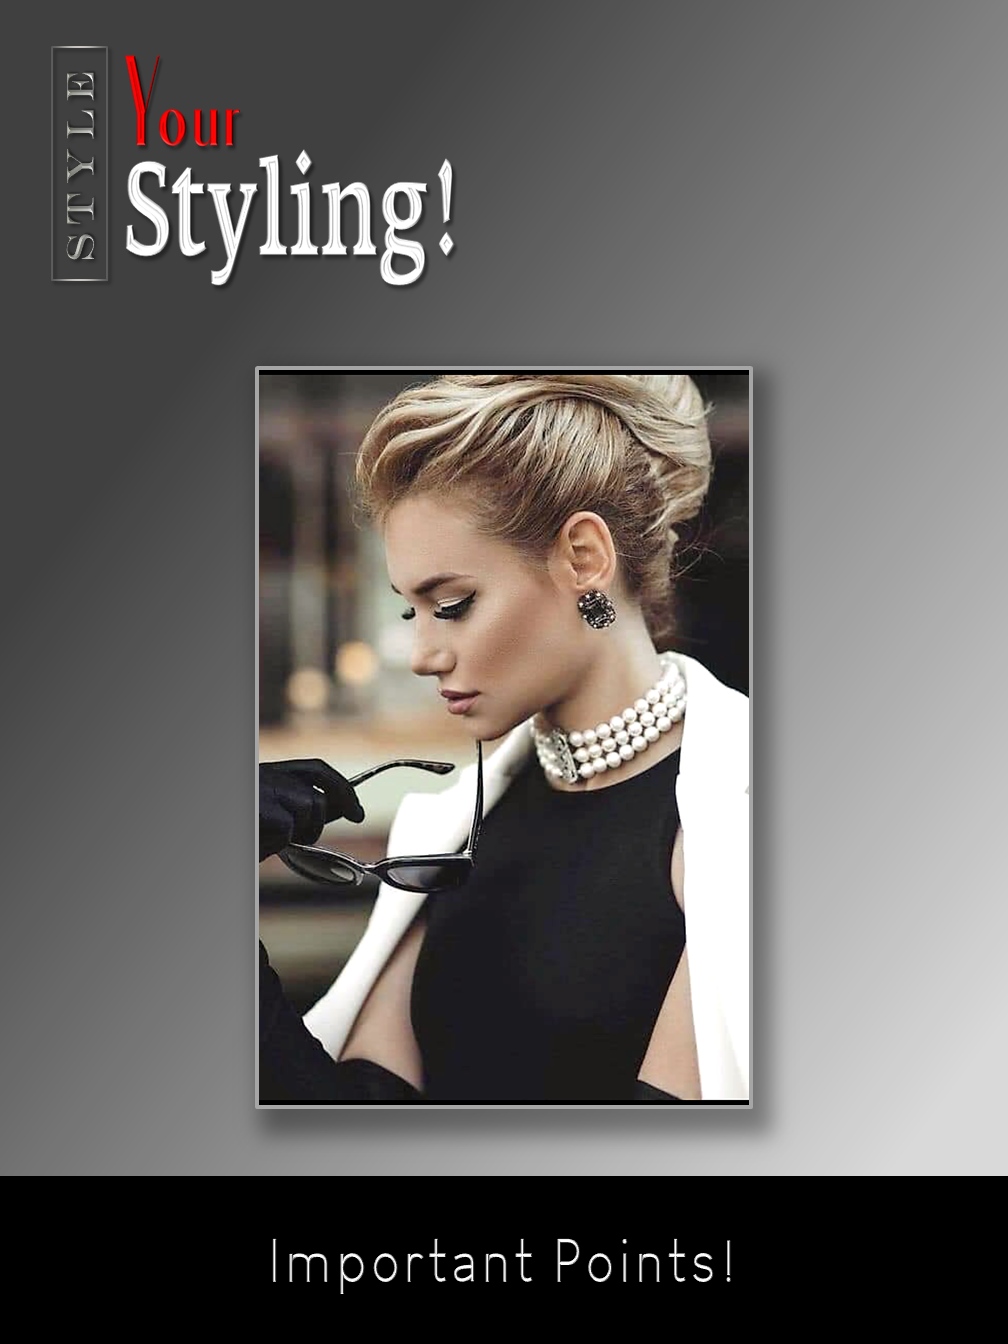 Your Styling!